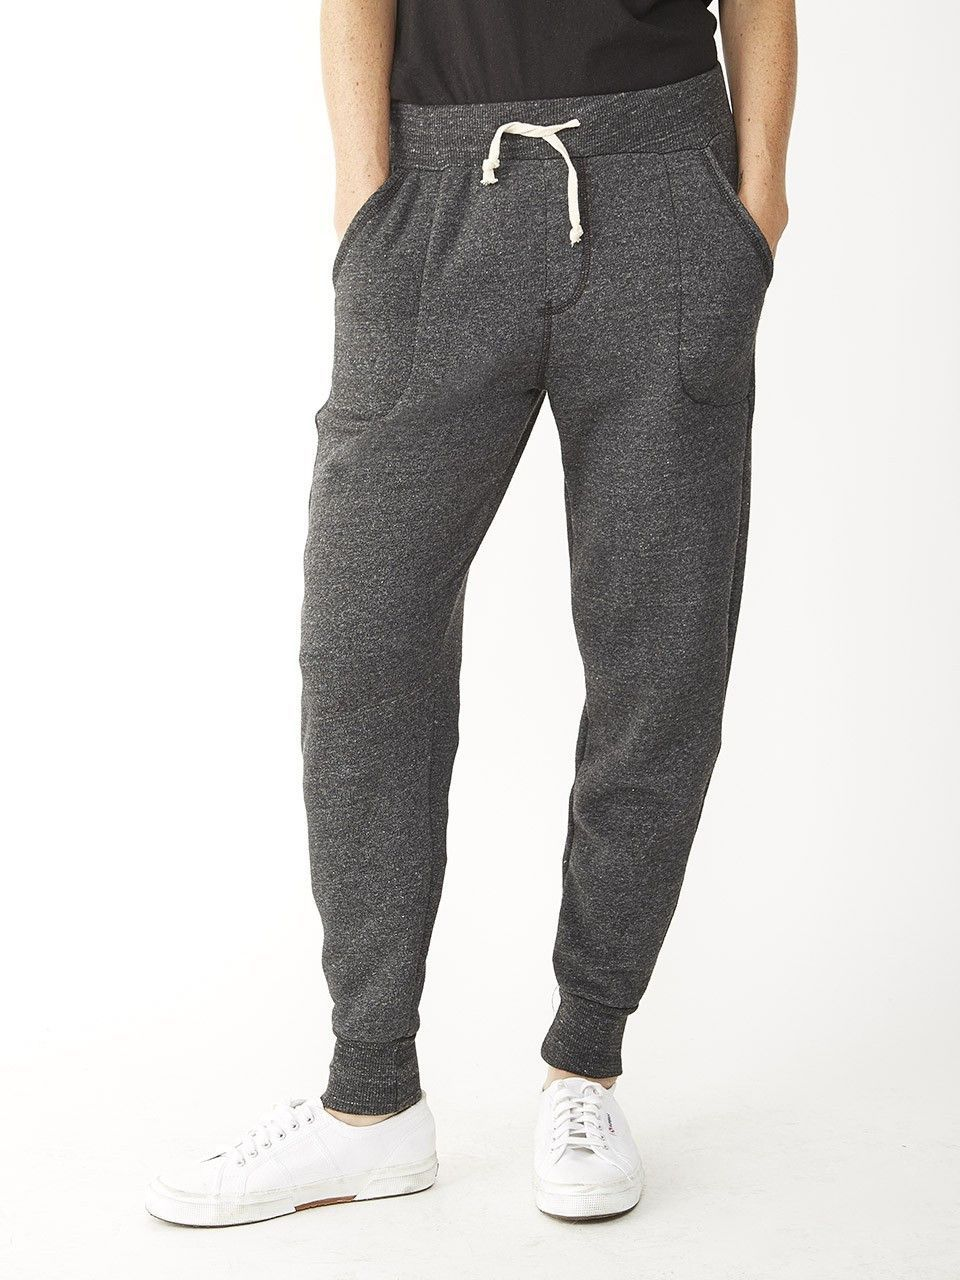 28c168bc65 Forget all the old styles of sweatpants and try these jogger pants in  signature soft fabric known as Eco-Fleece. It has been made from the  perfect ...